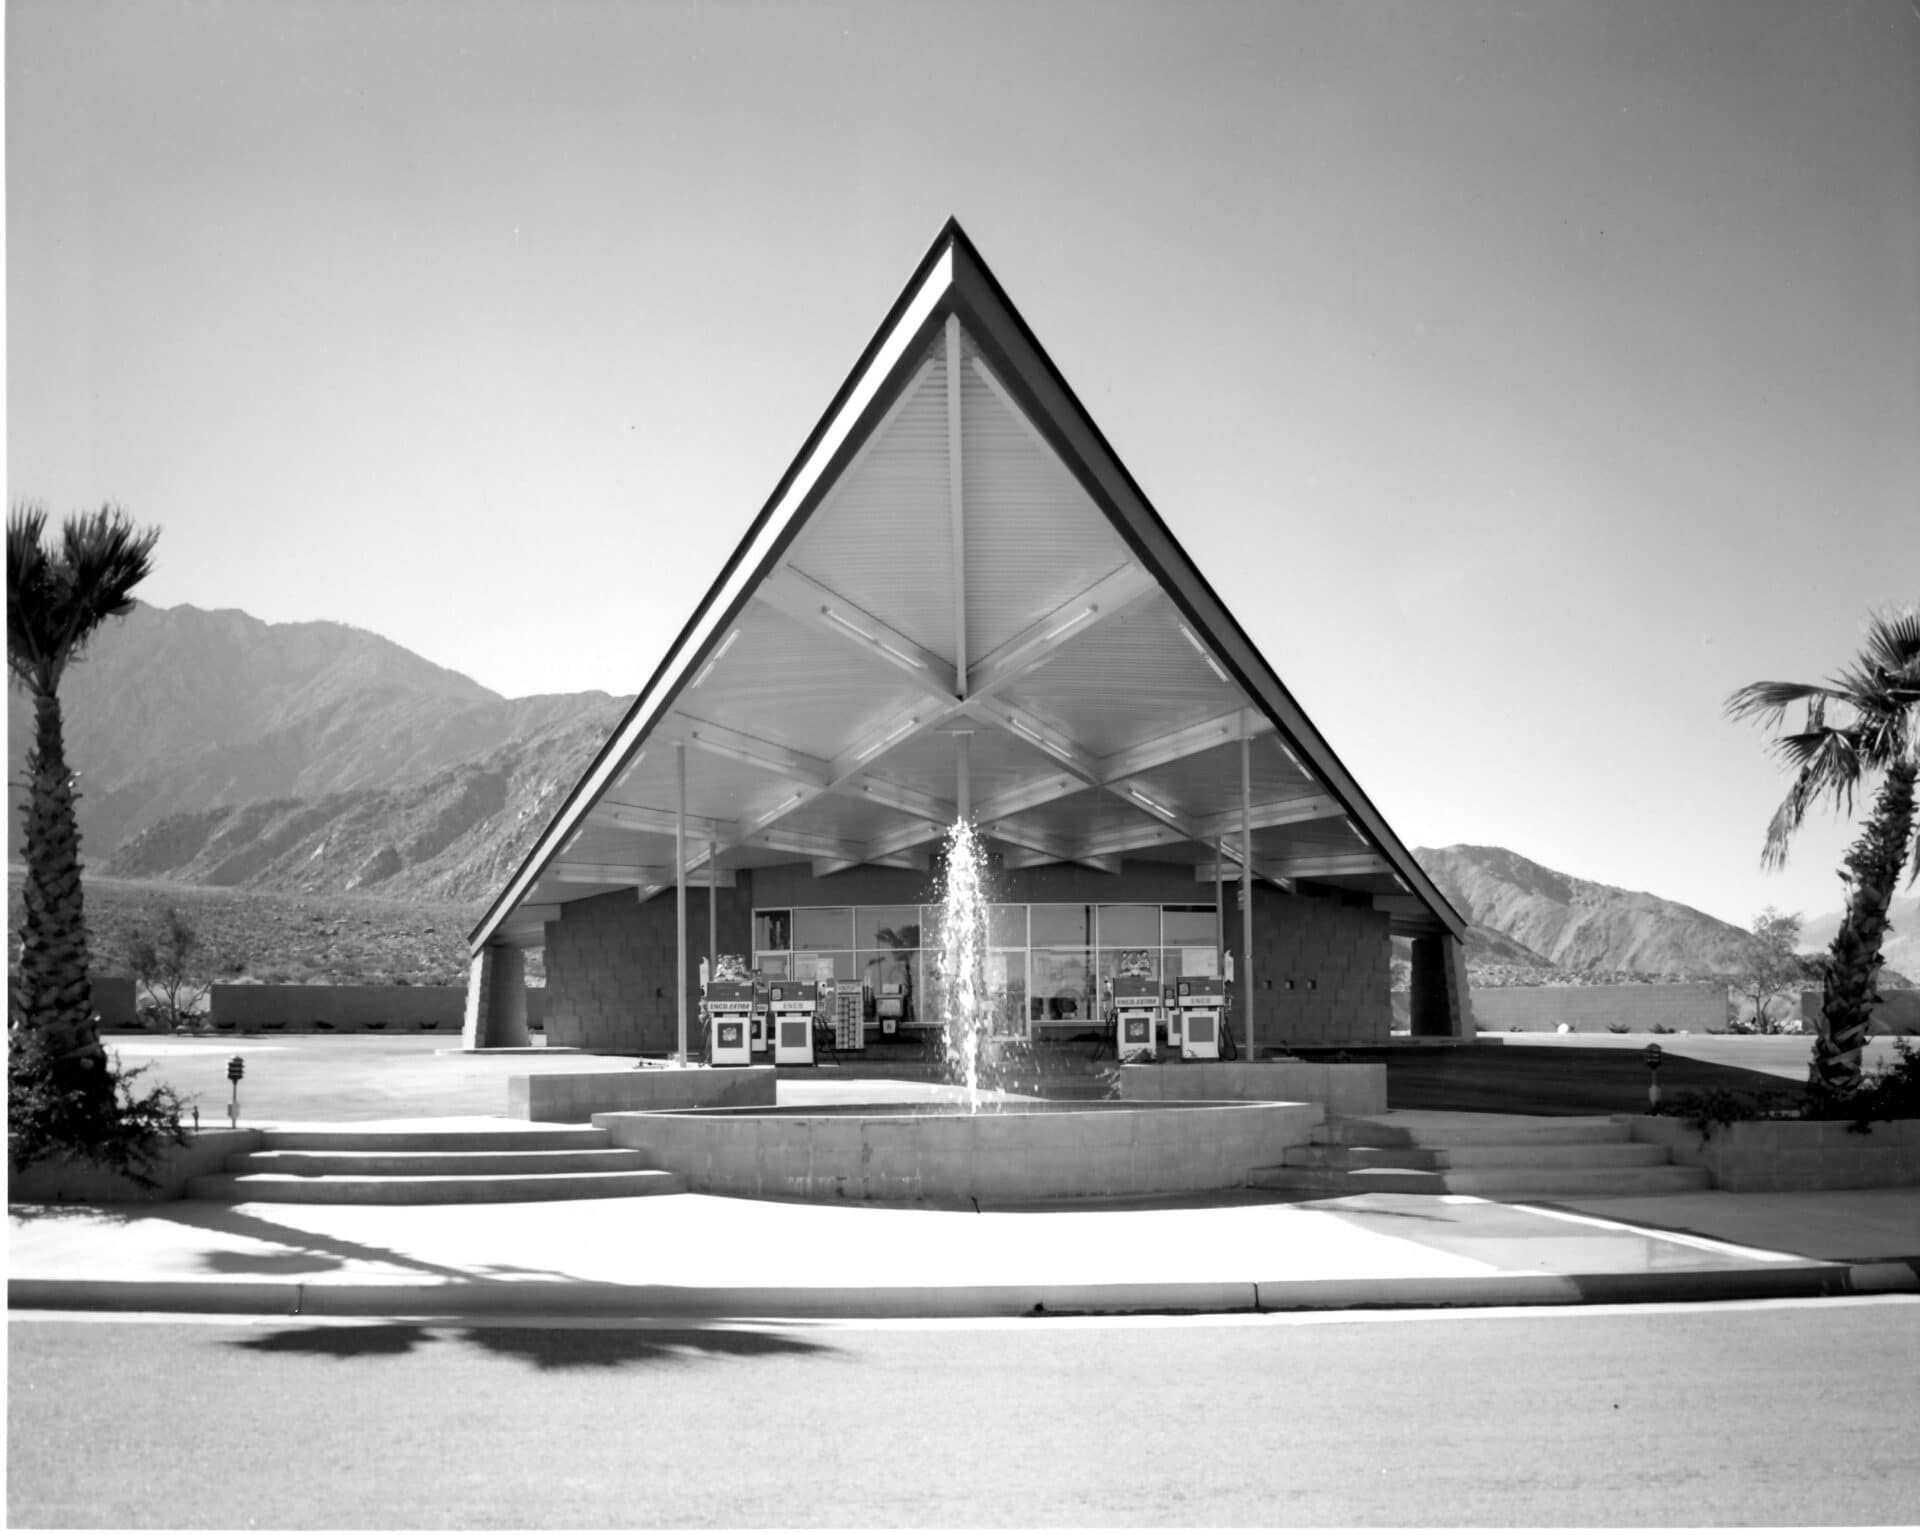 tramway gas station visitor center